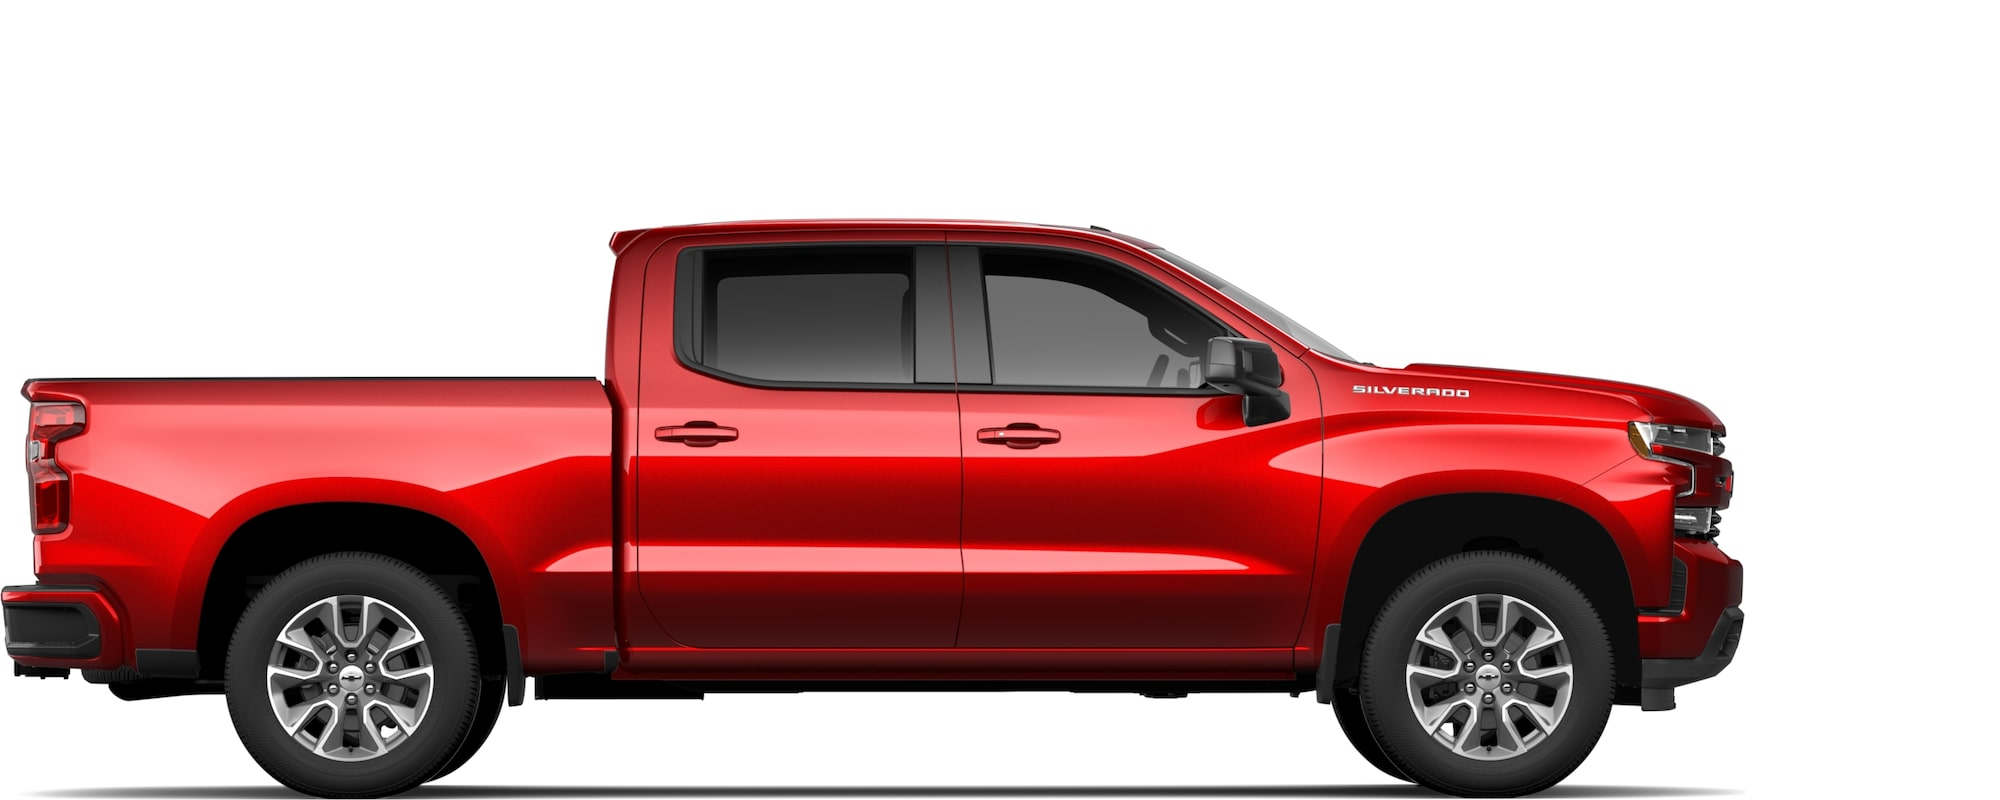 Compare chevrolet large cars by price, mpg, seating capacity, engine size & more! Build Your Own New Chevy Car Truck Crossover Suv Or Van